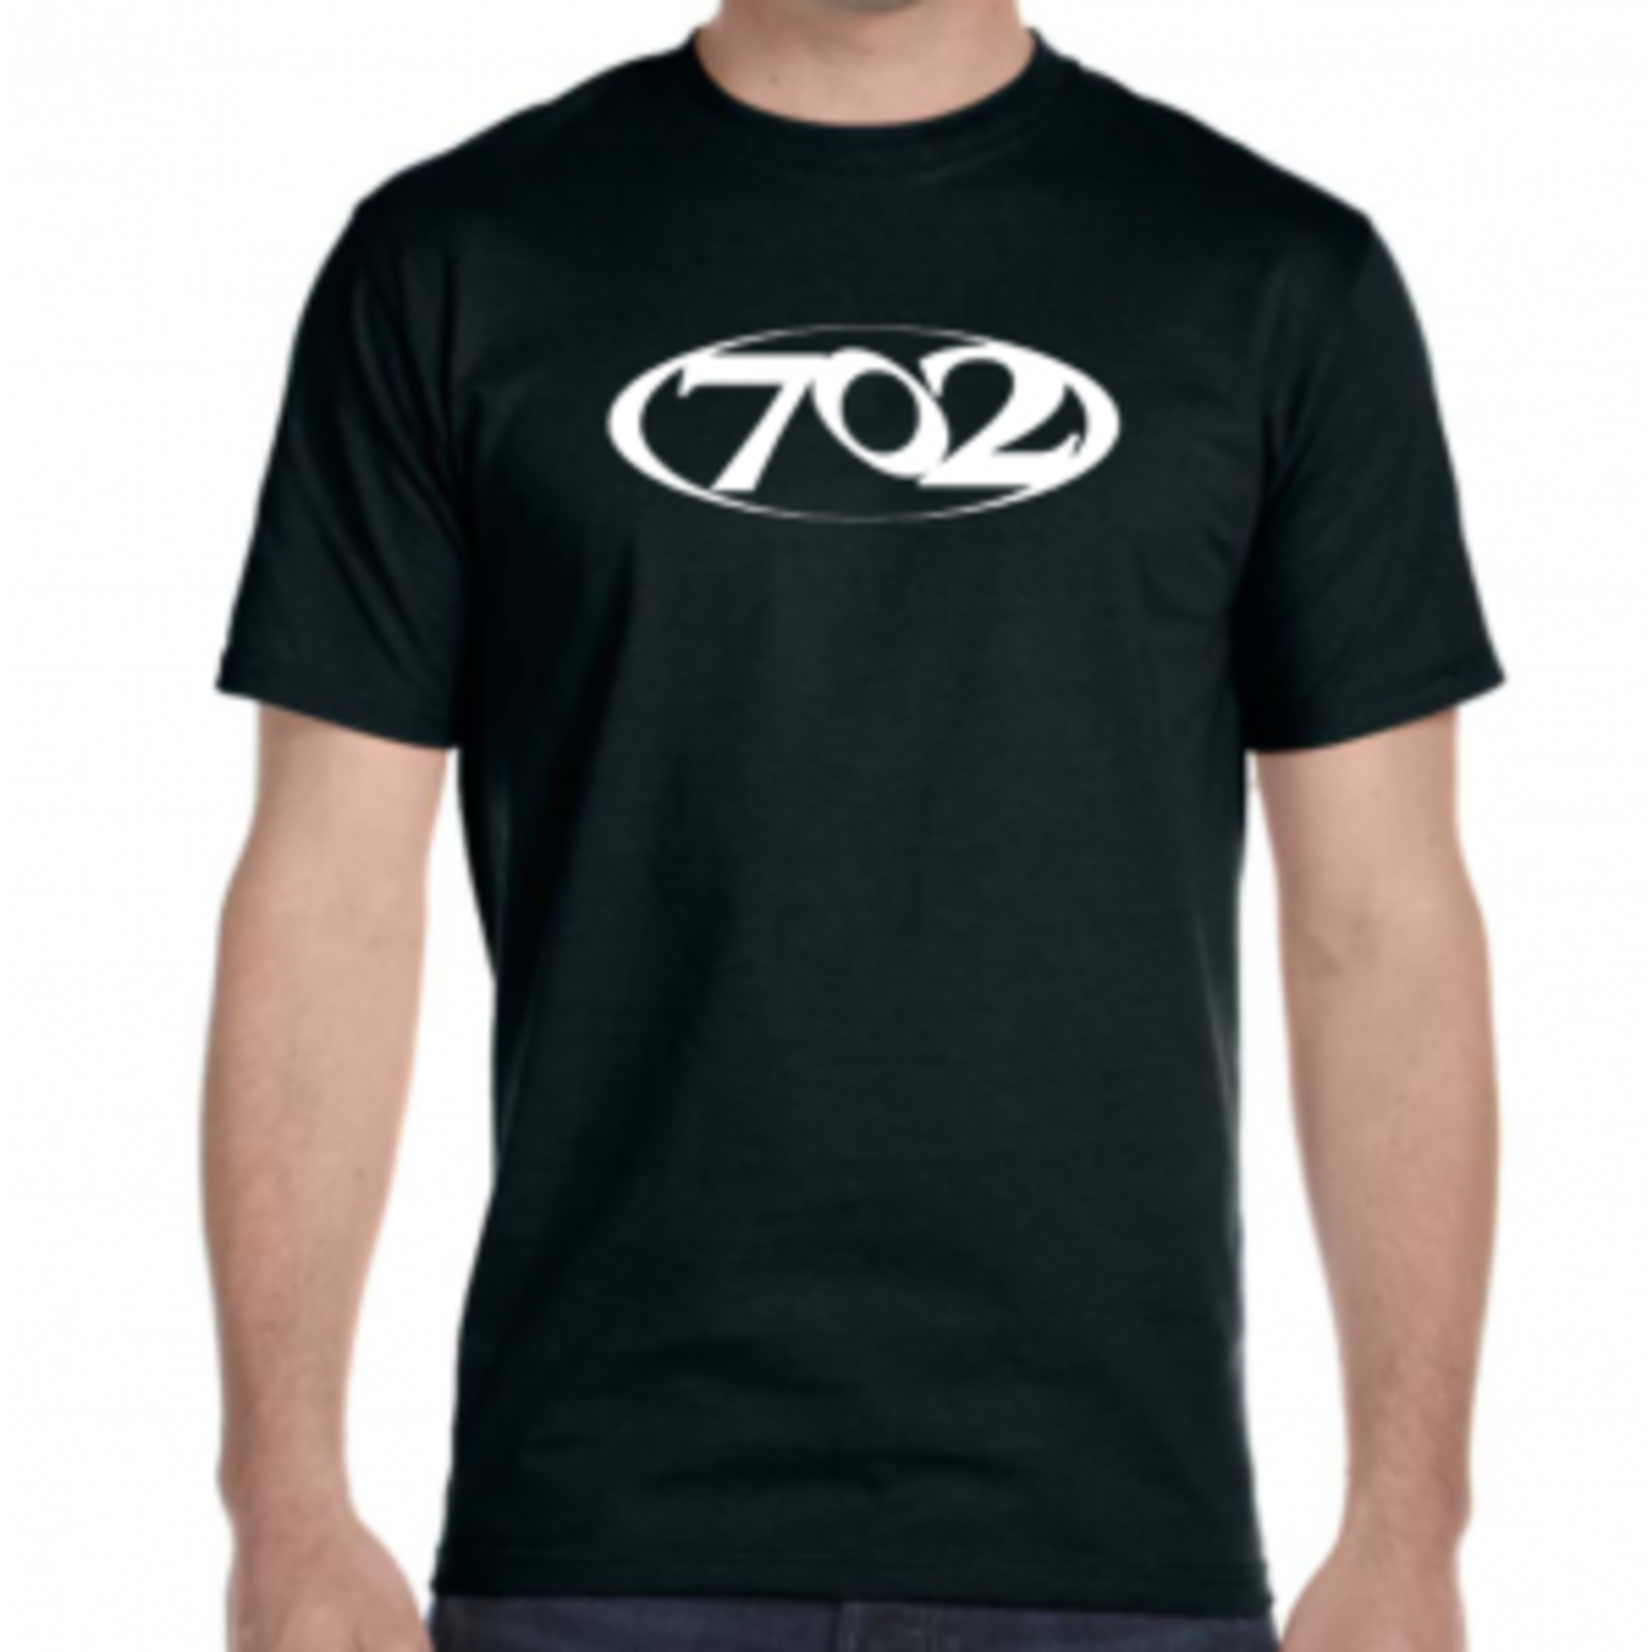 RCSwag 702 Outlaw T-Shirt by RC SWAG